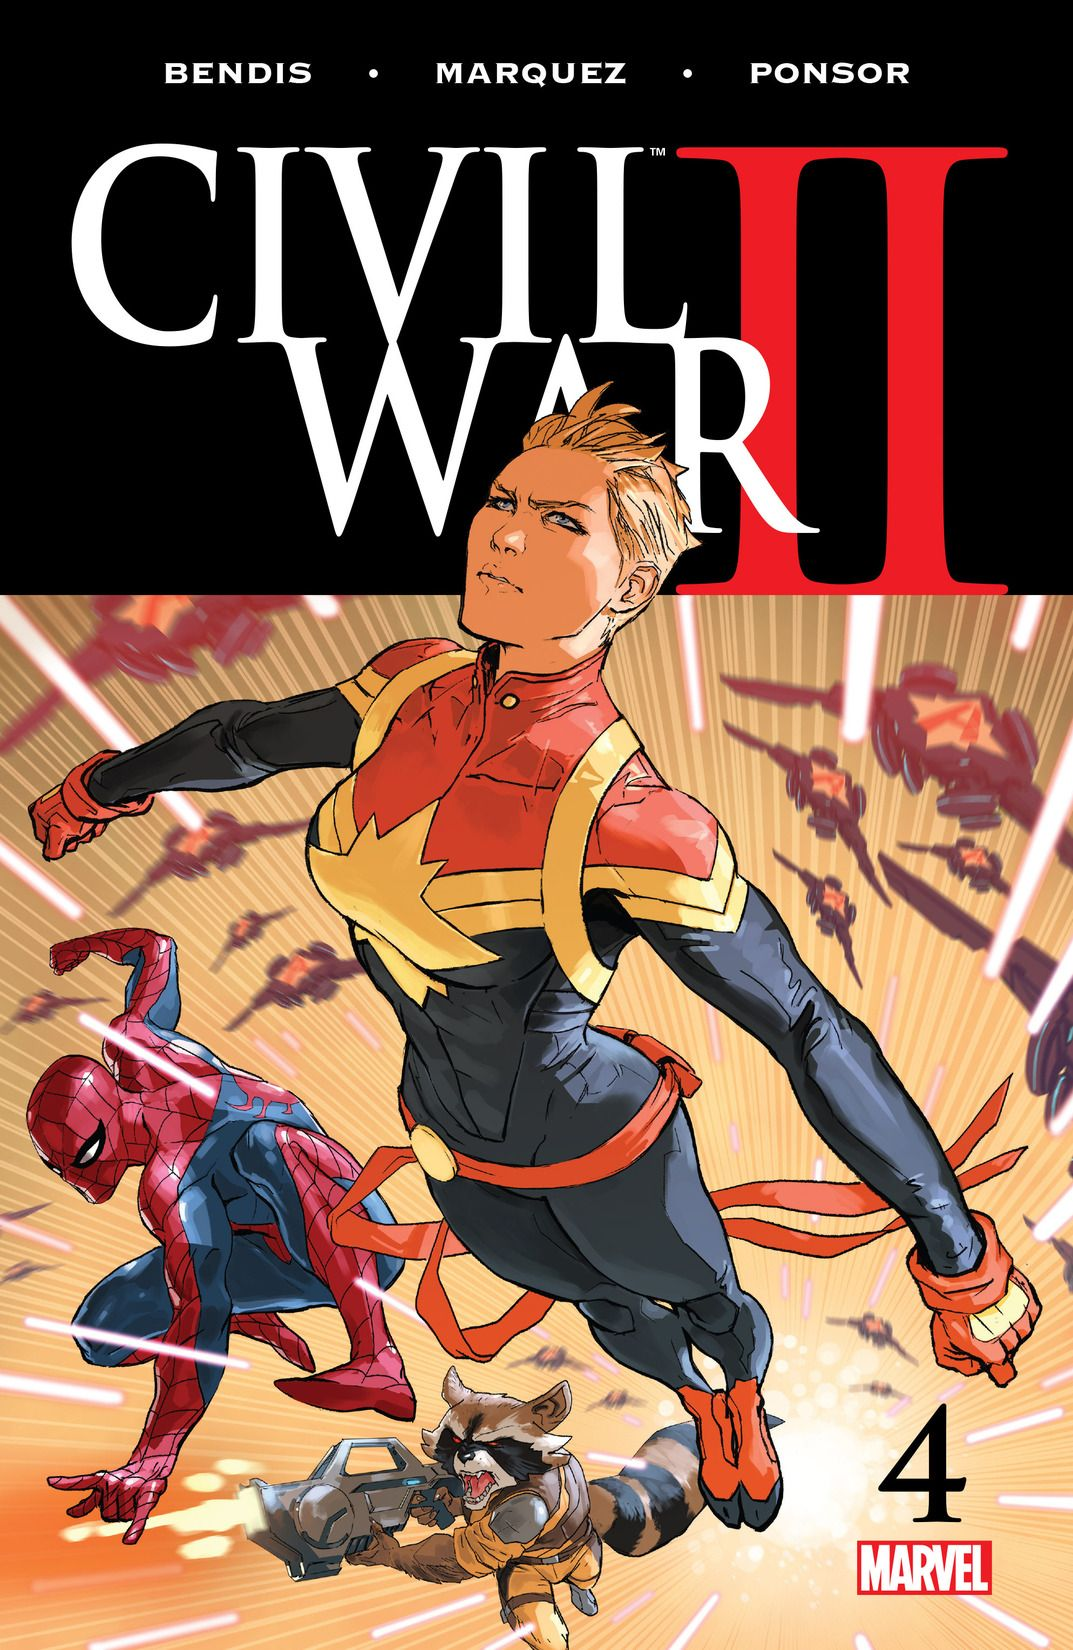 Civil war issue 4 from marvel